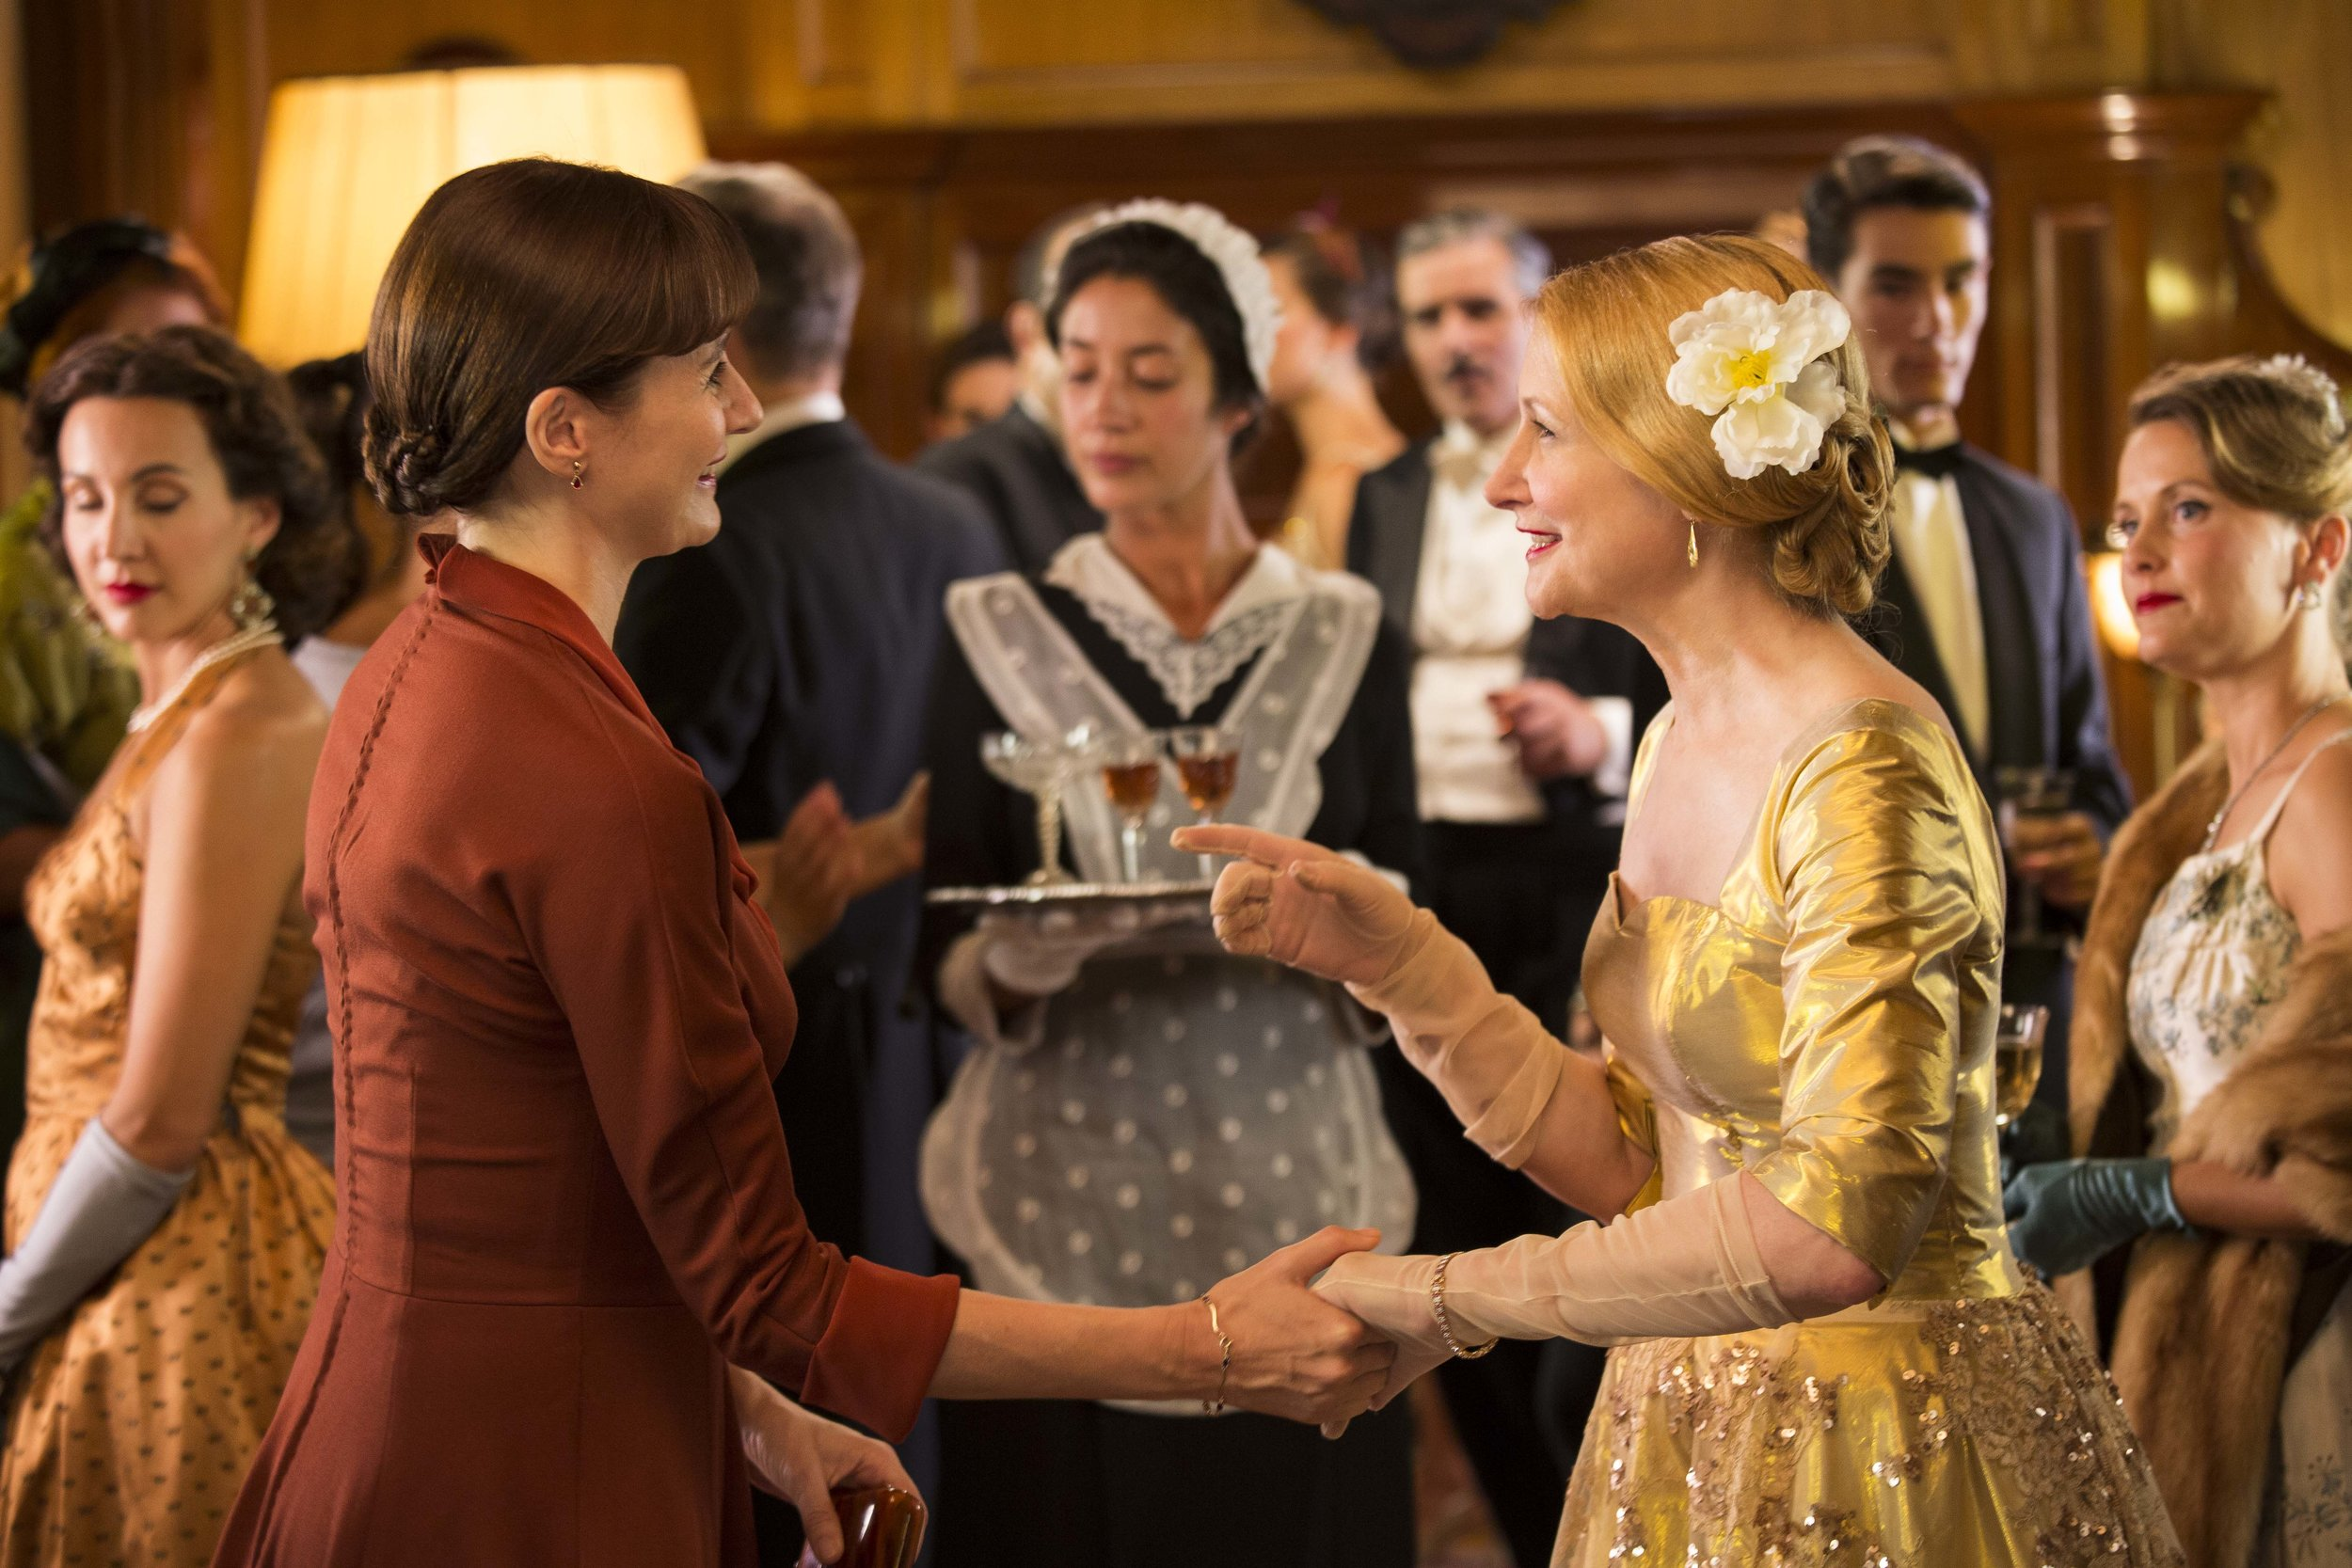 """Florence Green (Emily Mortimer, left), a bookseller just arrived in an East Anglia village, meets the town's grande dame, Mrs. Violet Gamart (Patricia Clarkson), in the English drama """"The Bookshop."""" (Photo courtesy Greenwich Entertainment)"""